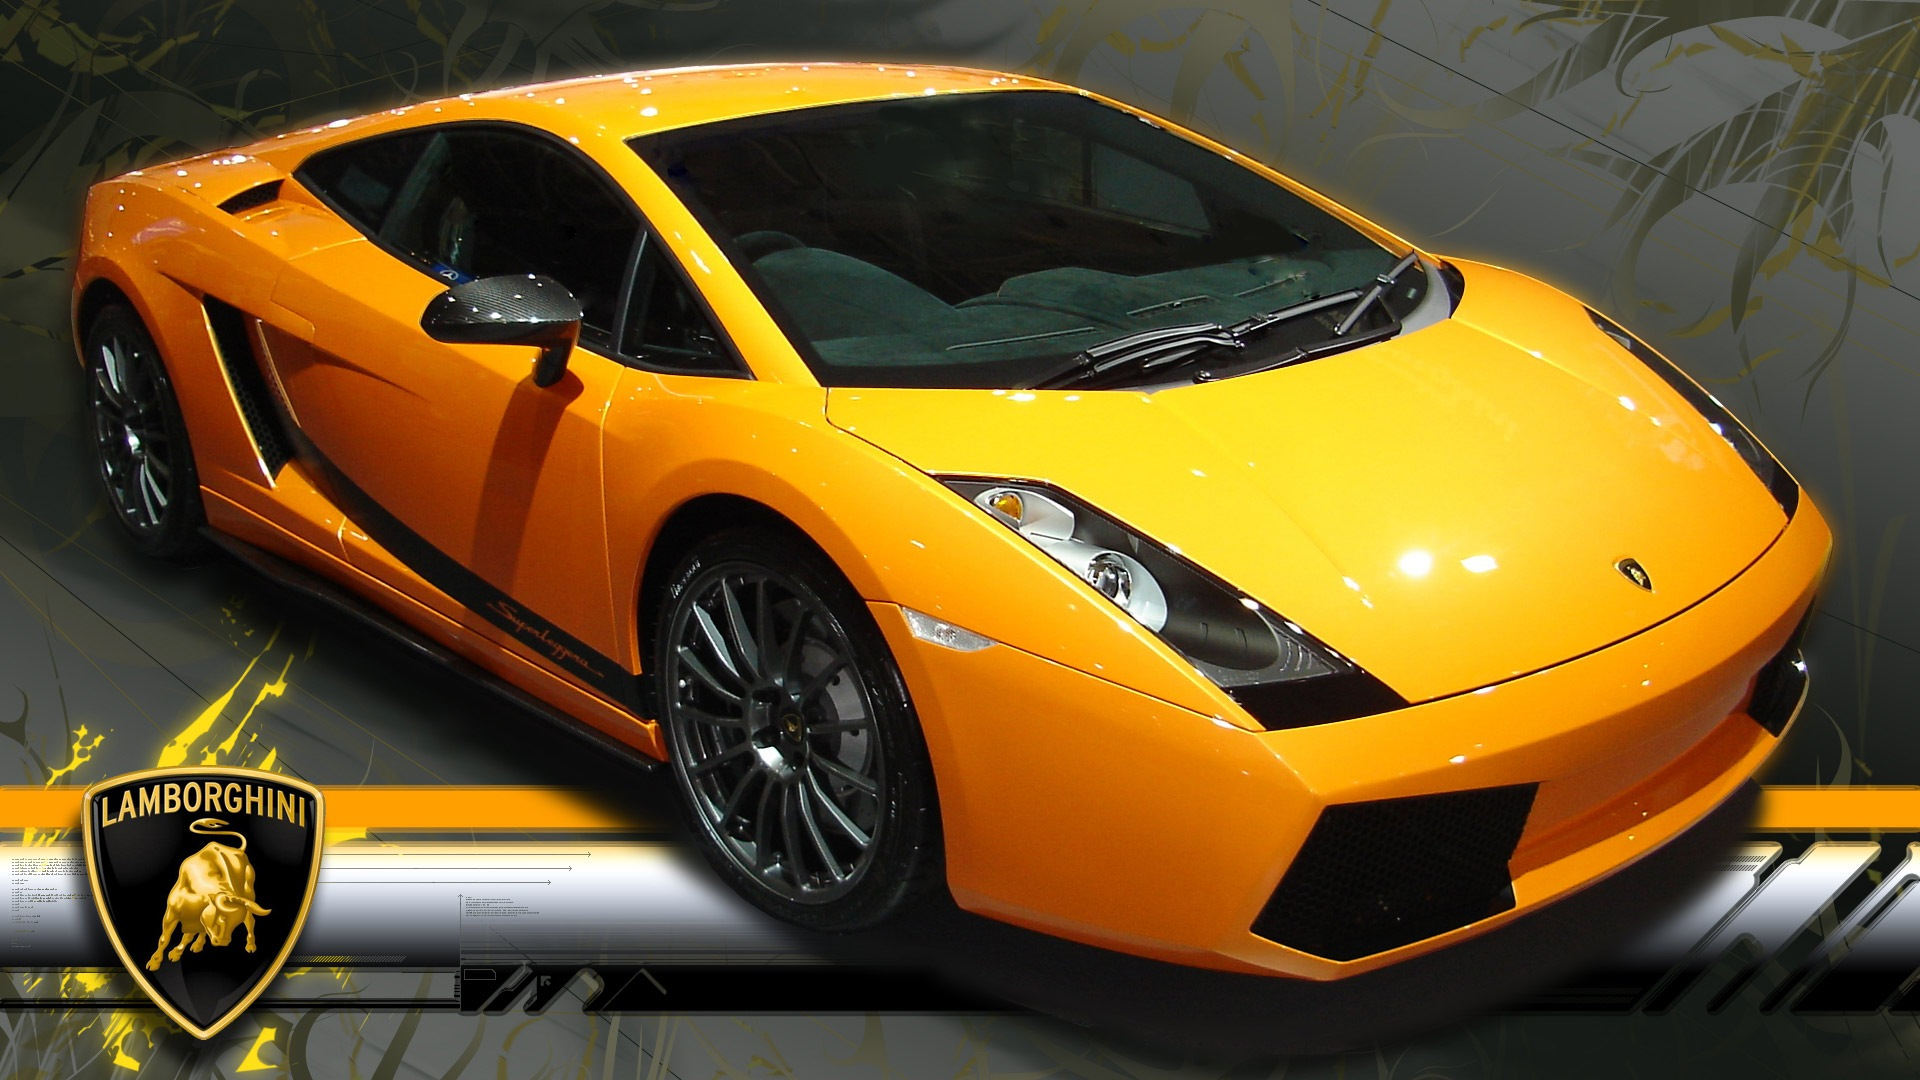 Lamborghini Gallardo Yellow Google Plus Cover